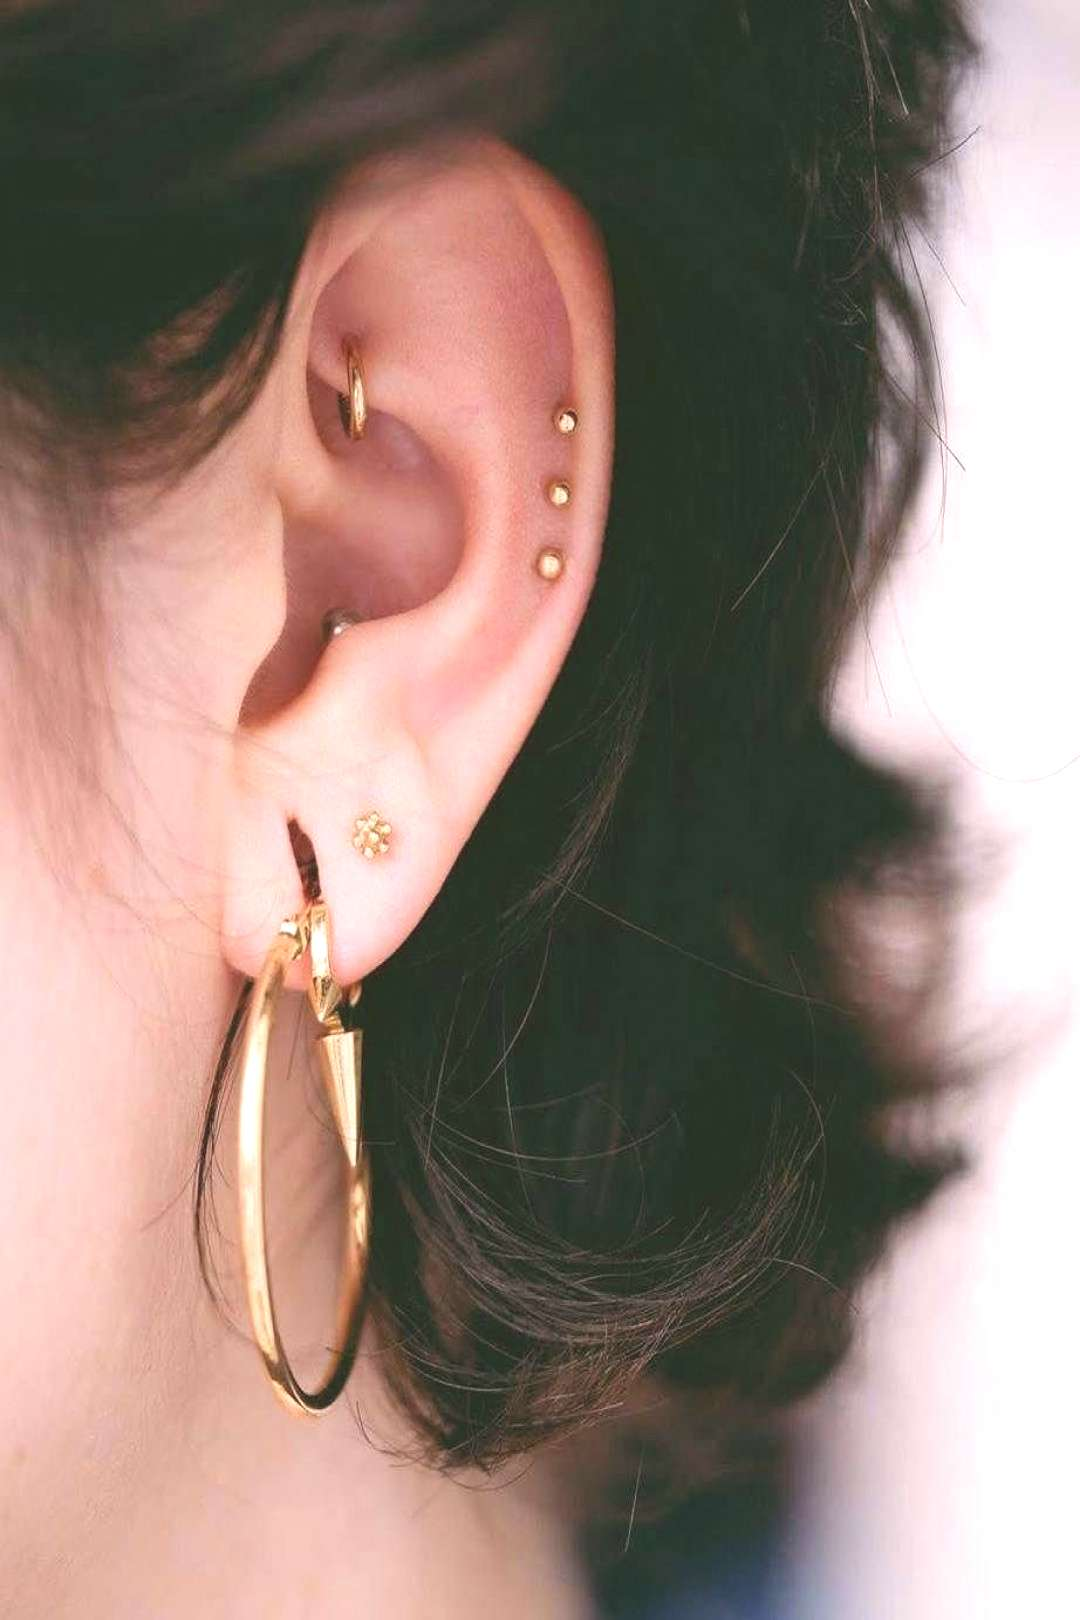 Although there are a lot of different ear piercing options, the 'rook' remains one of the most unus